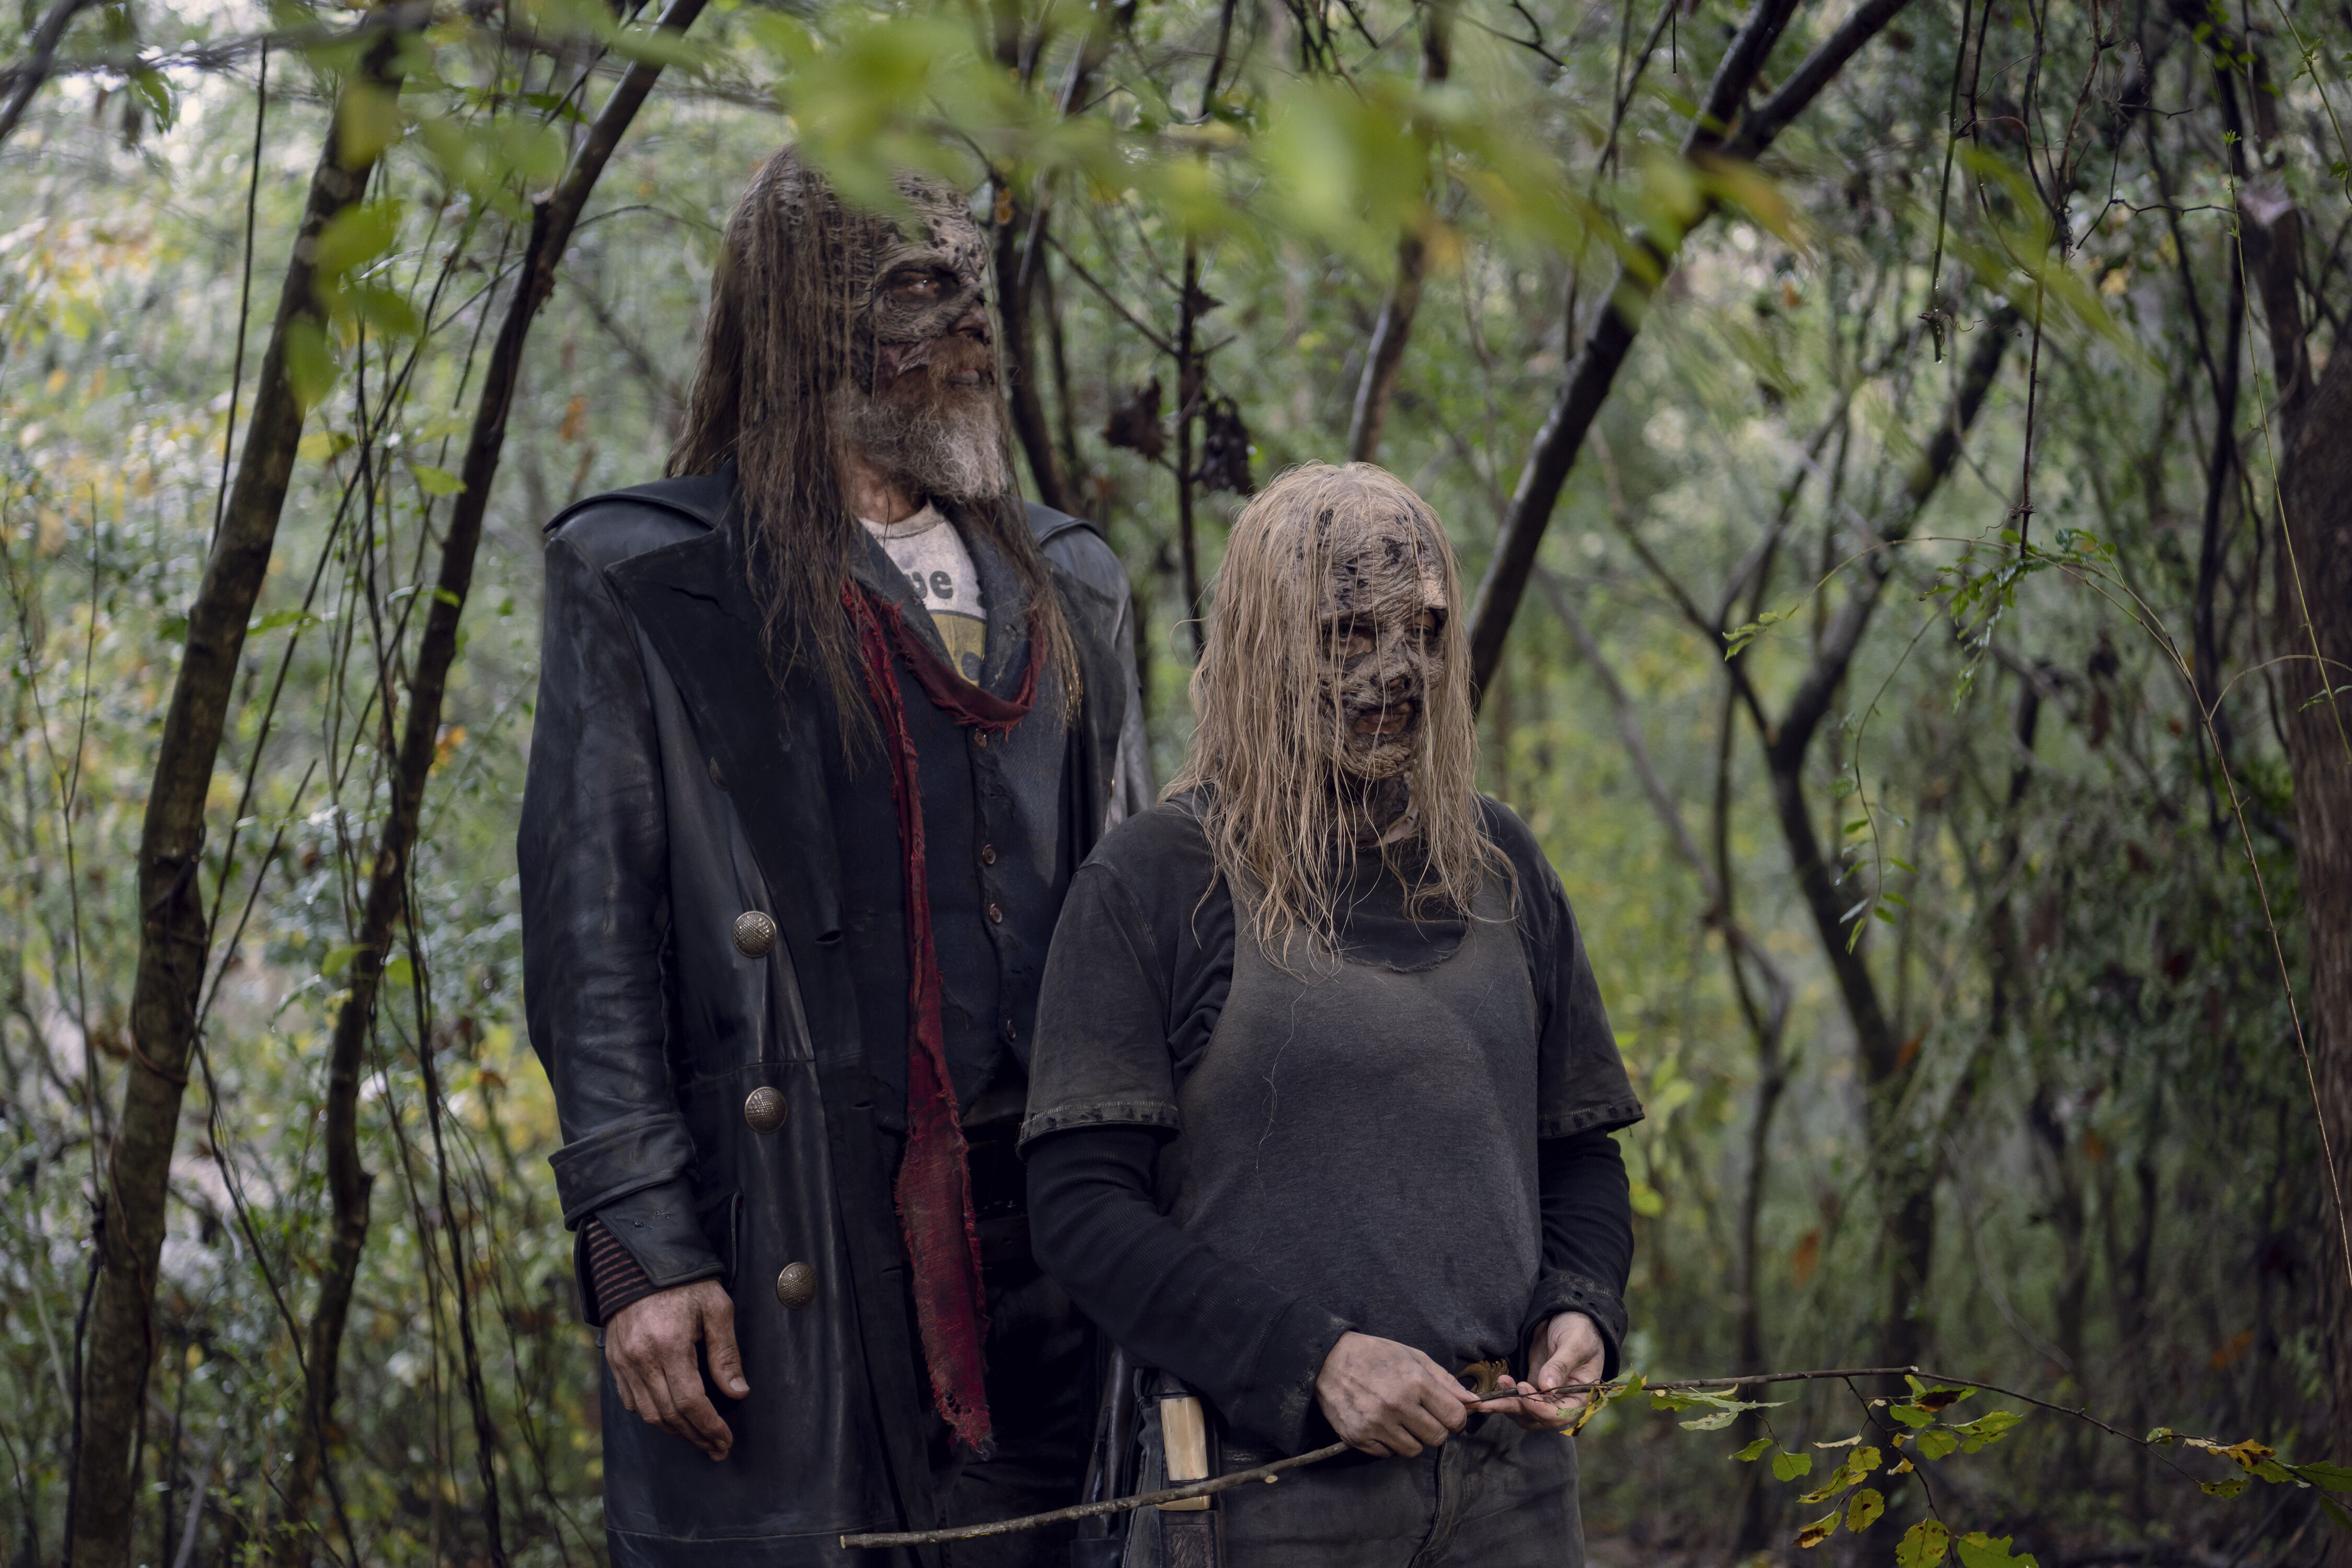 5 most shocking moments from The Walking Dead season 10 trailer